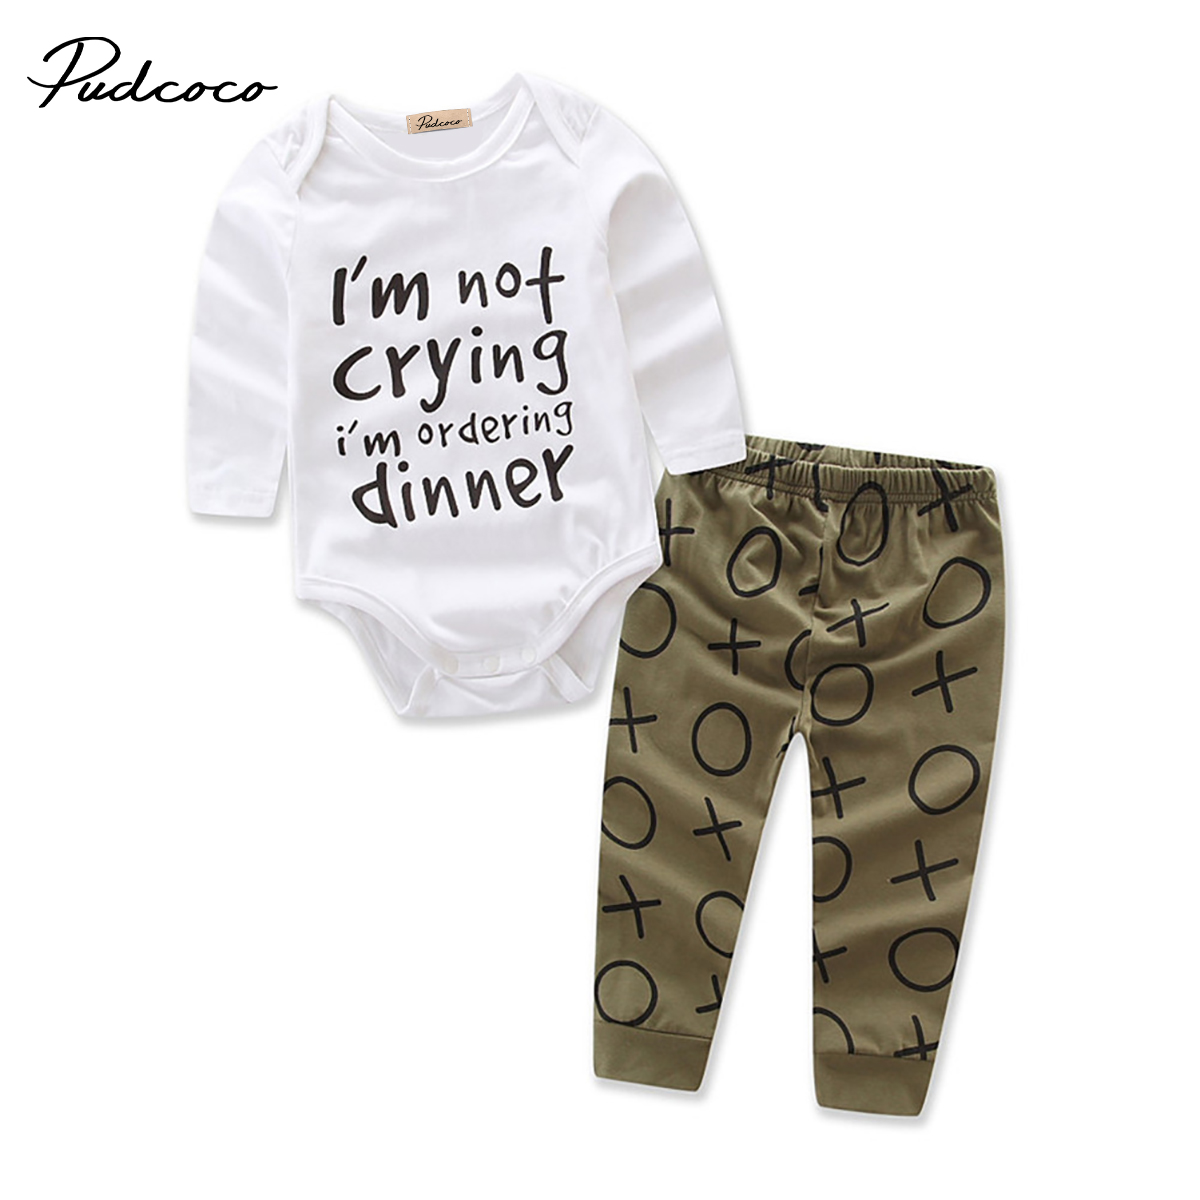 Autumn baby Clothing Set Cute Newborn Baby Boys Girls Cotton Romper Long Pants Clothes 2pcs Outfits Set